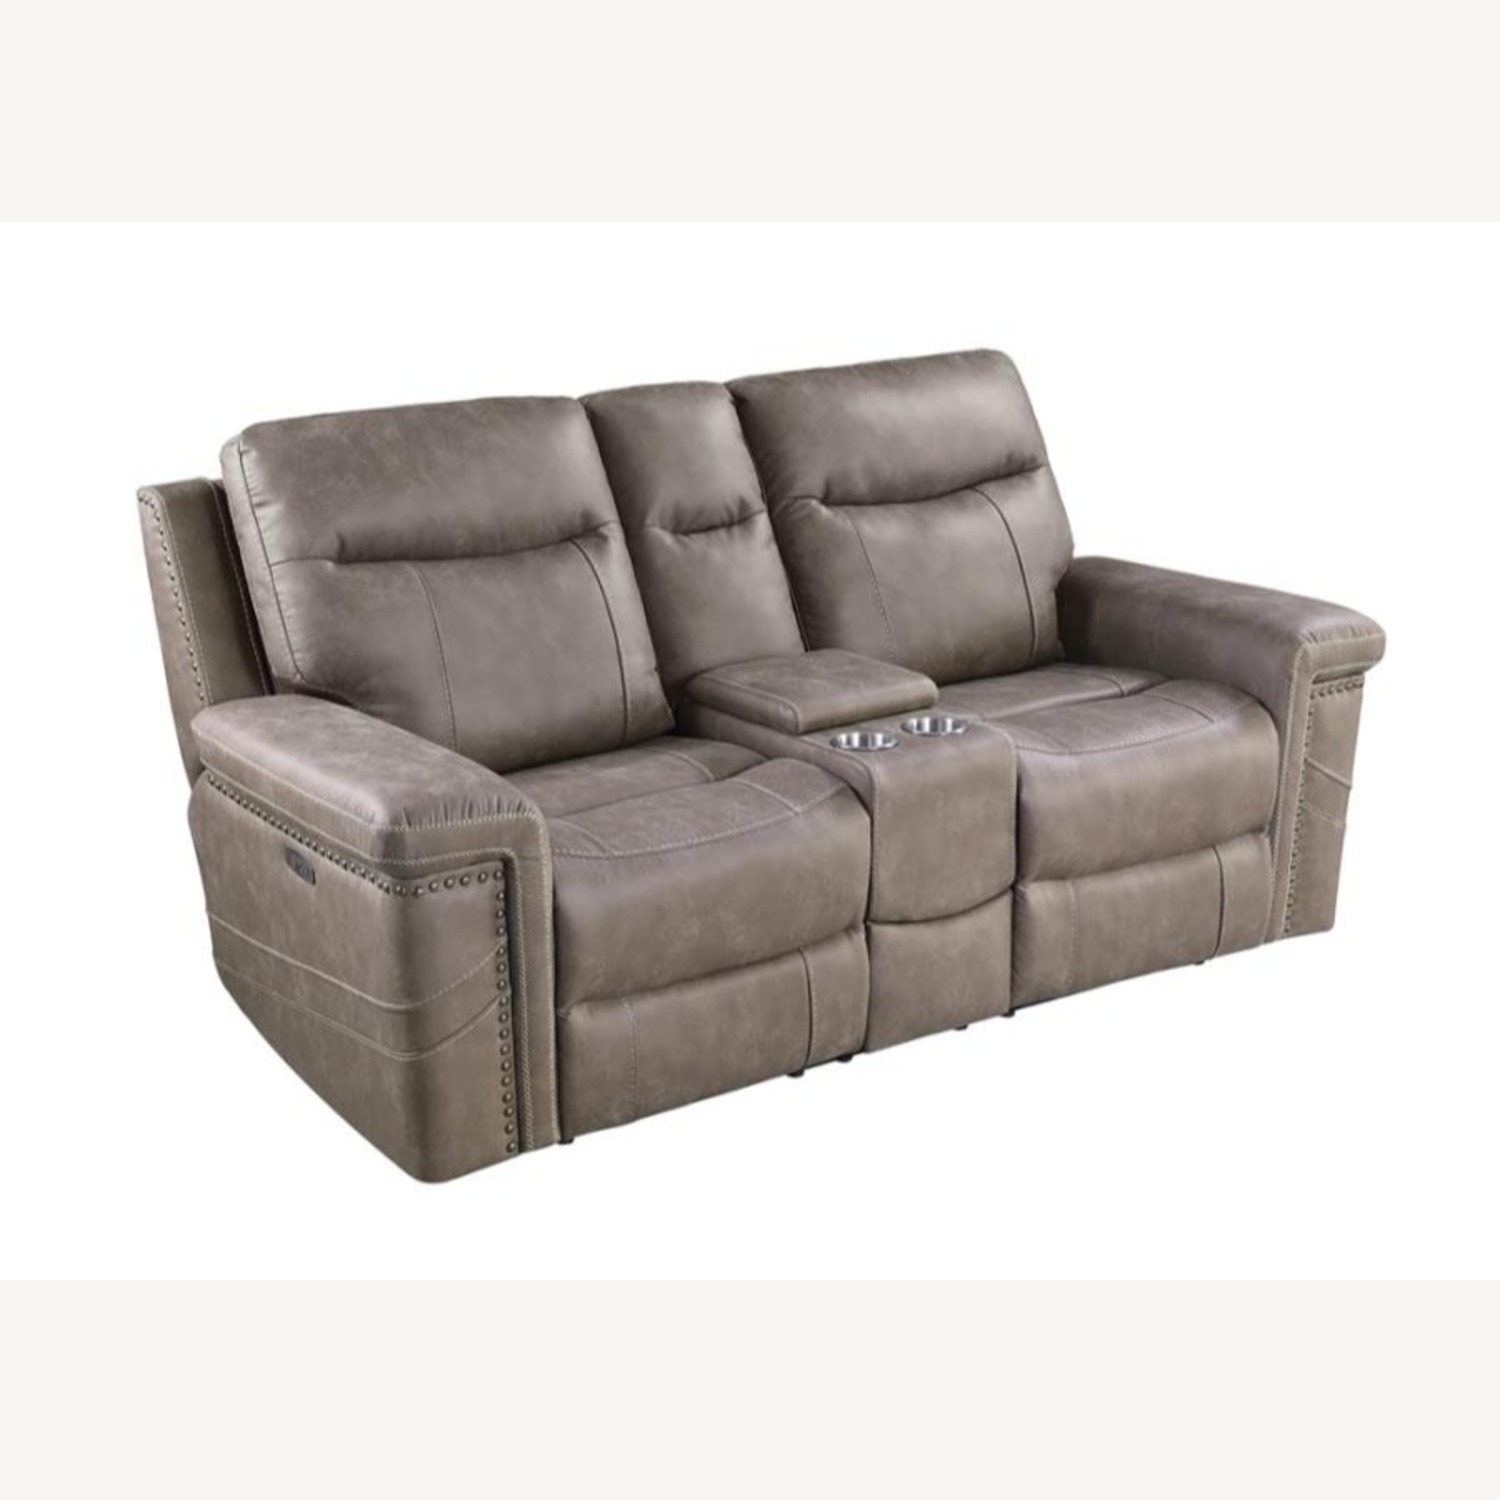 Power Loveseat Recliner In Taupe Upholstery - image-9